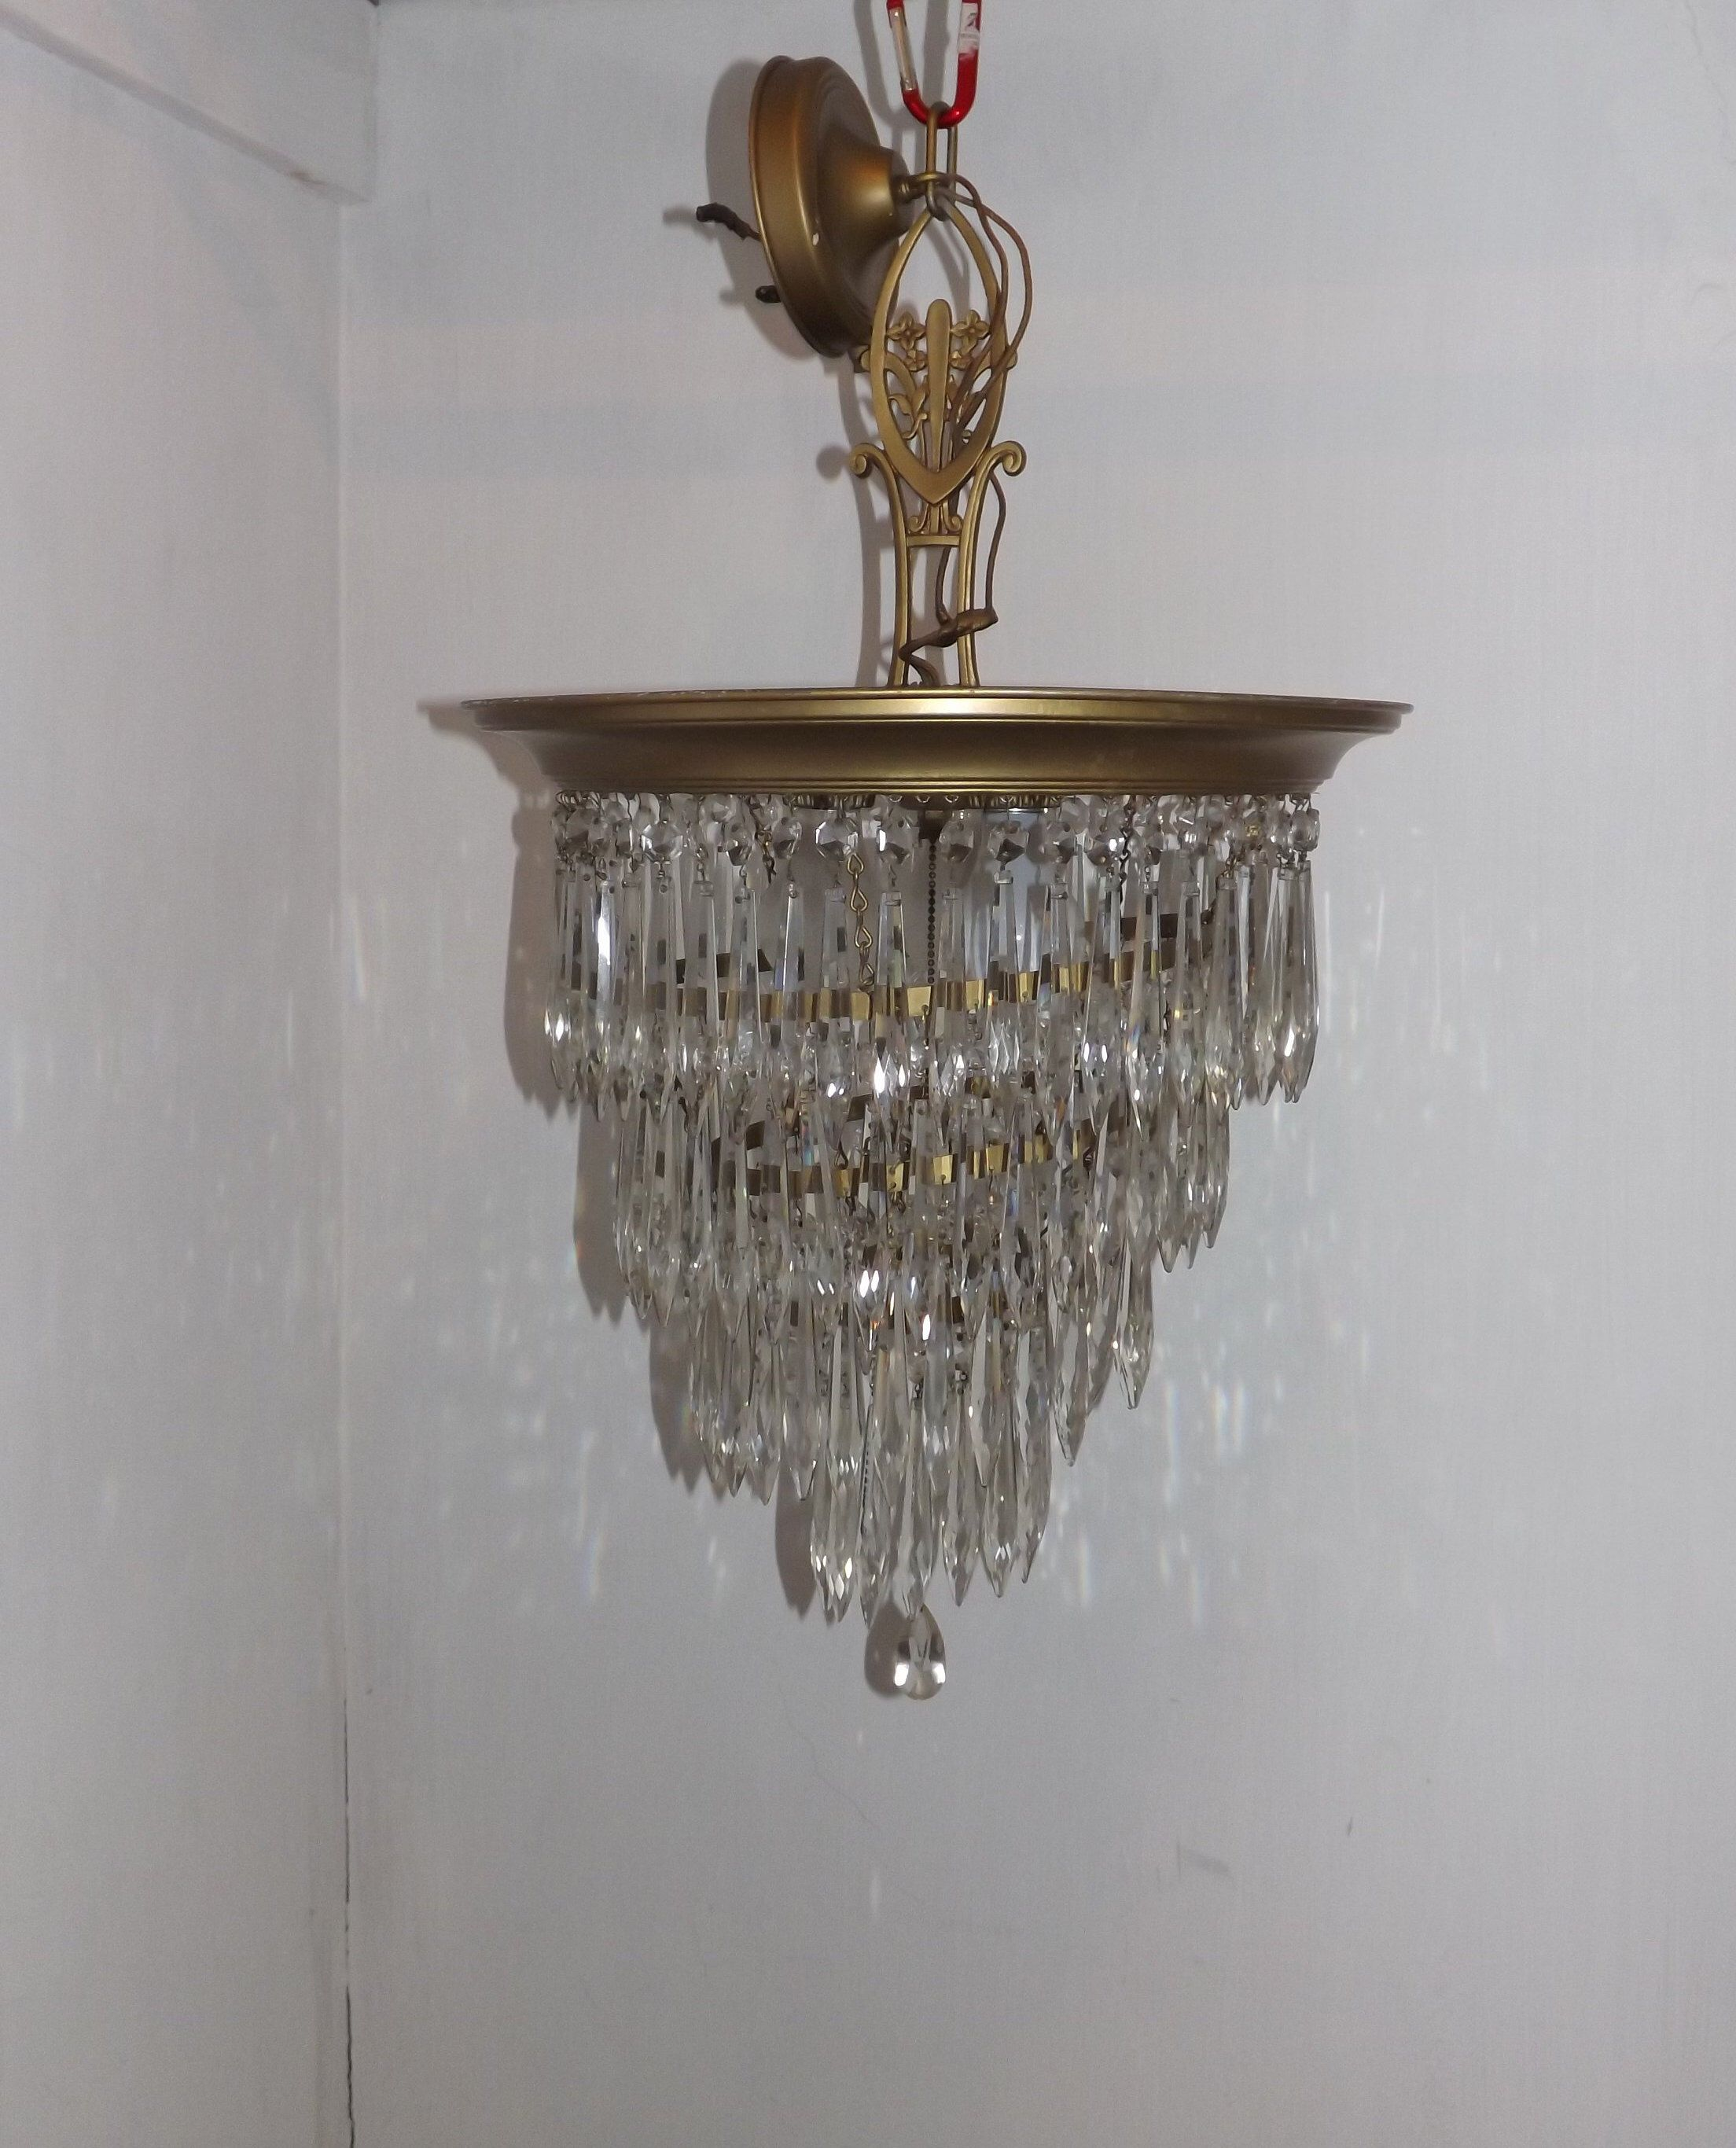 Fabulous 1930s Art Deco 4 Tier Crystal Prism Wedding Cake Chandelier On Sale Now By Riversidegallery Wedding Cake Chandelier Crystal Prisms Cool Wedding Cakes